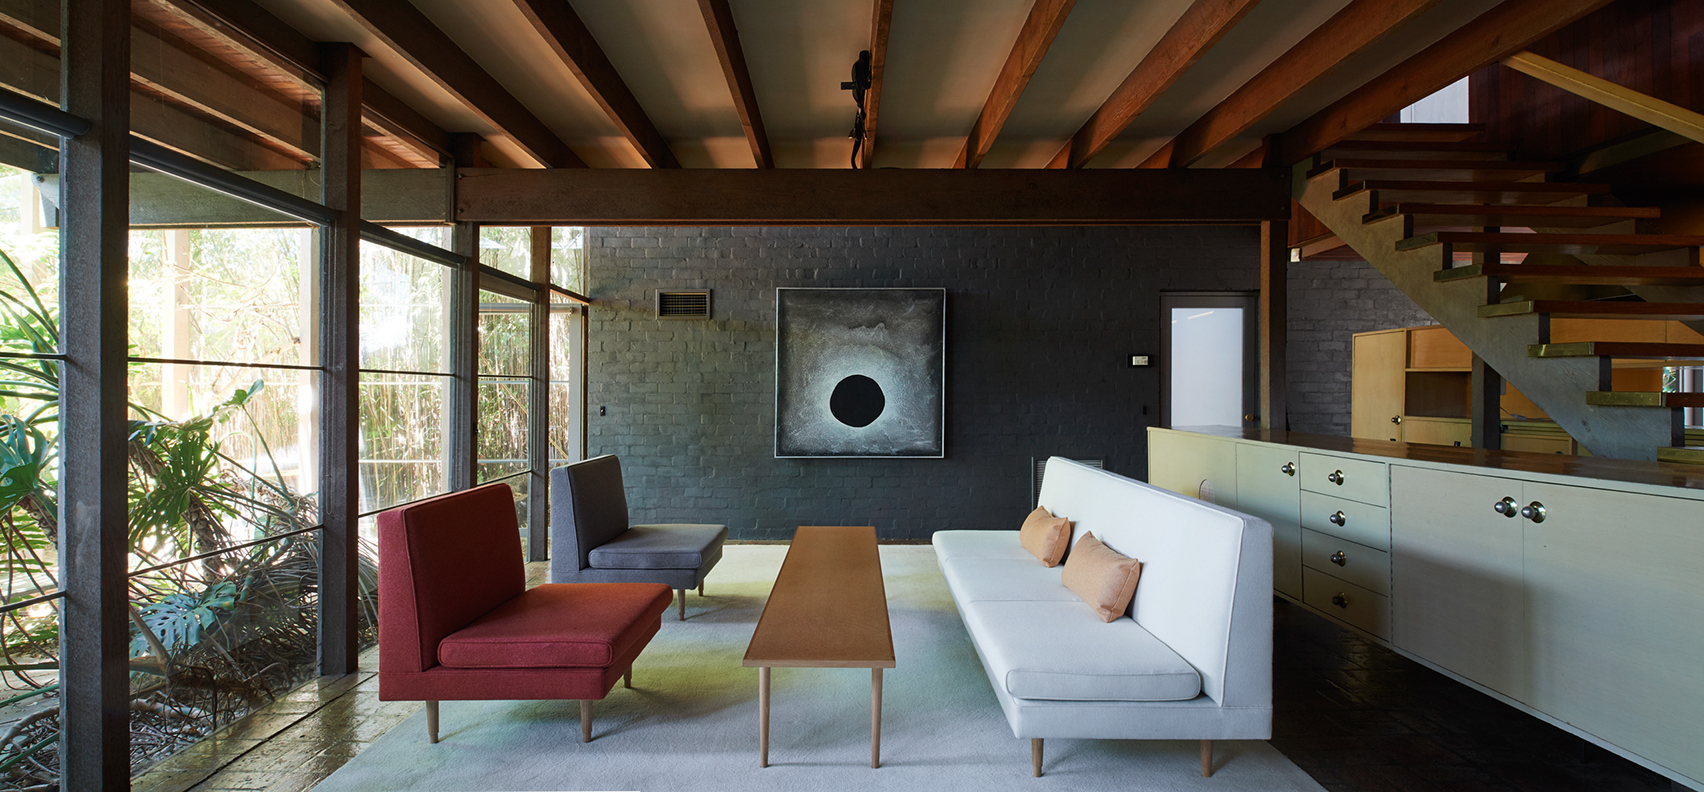 Exceptionnel Robin Boydu0027s Furniture Design At The Walsh Street House.